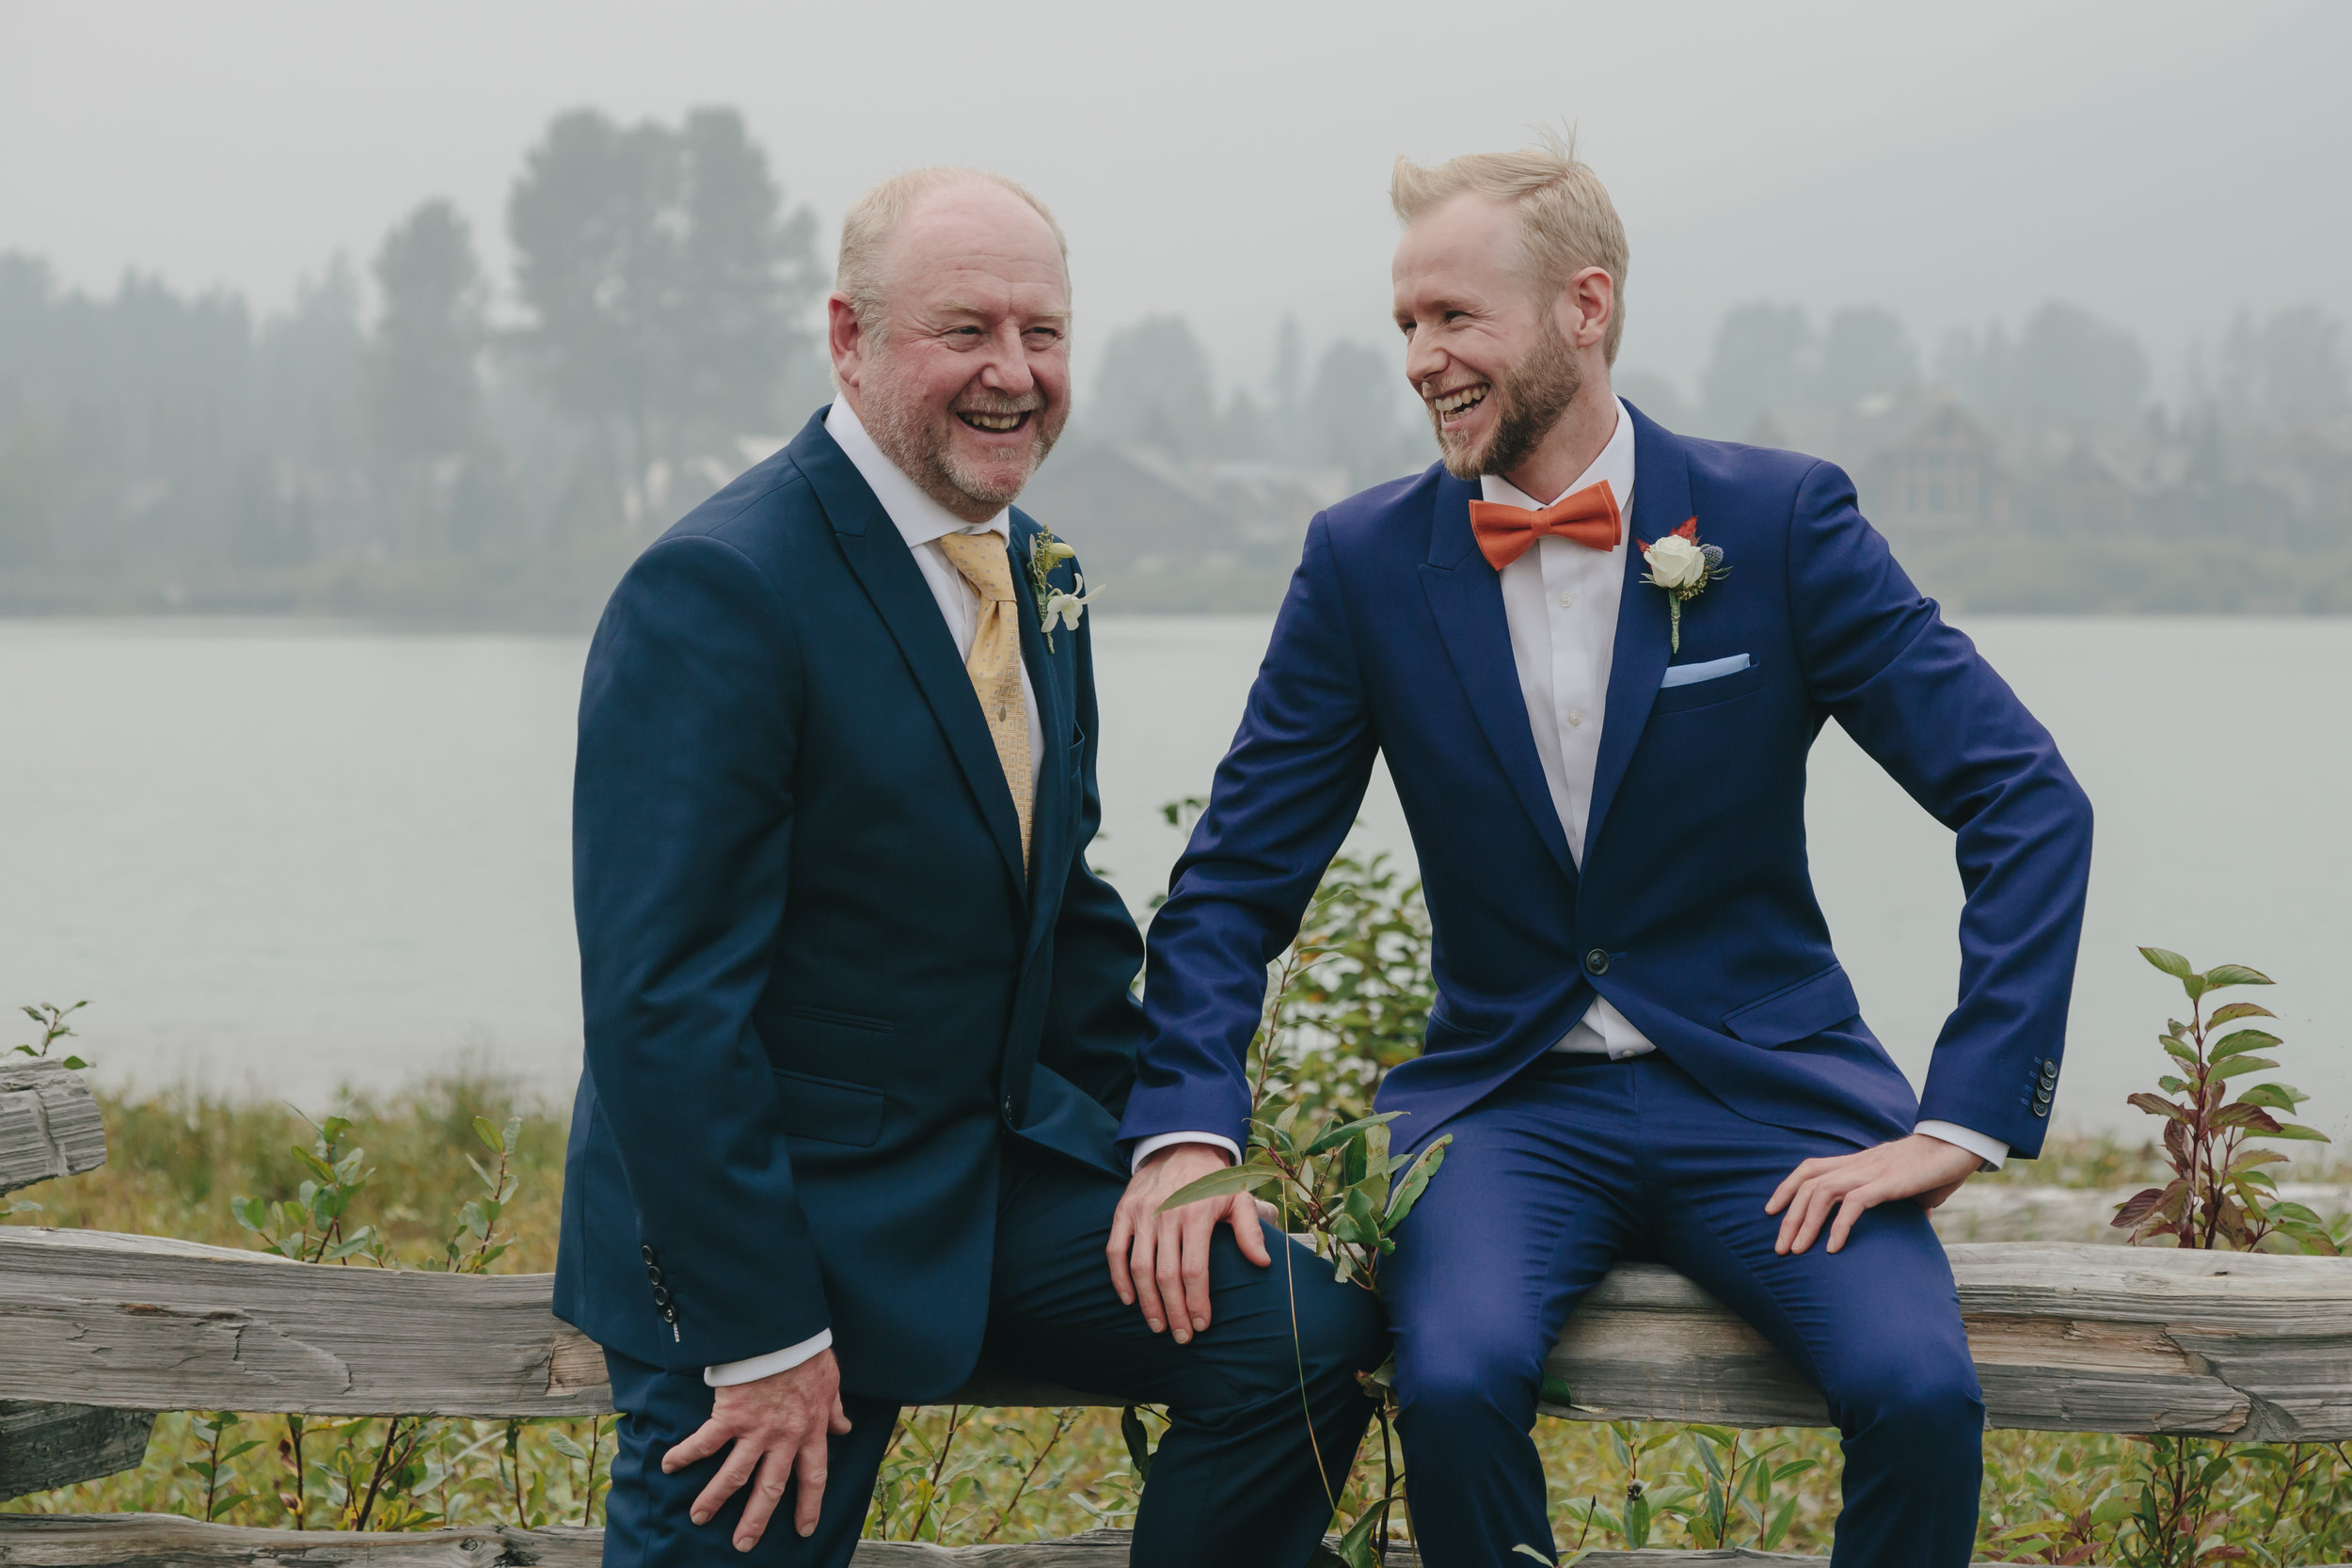 Groom and Father connection